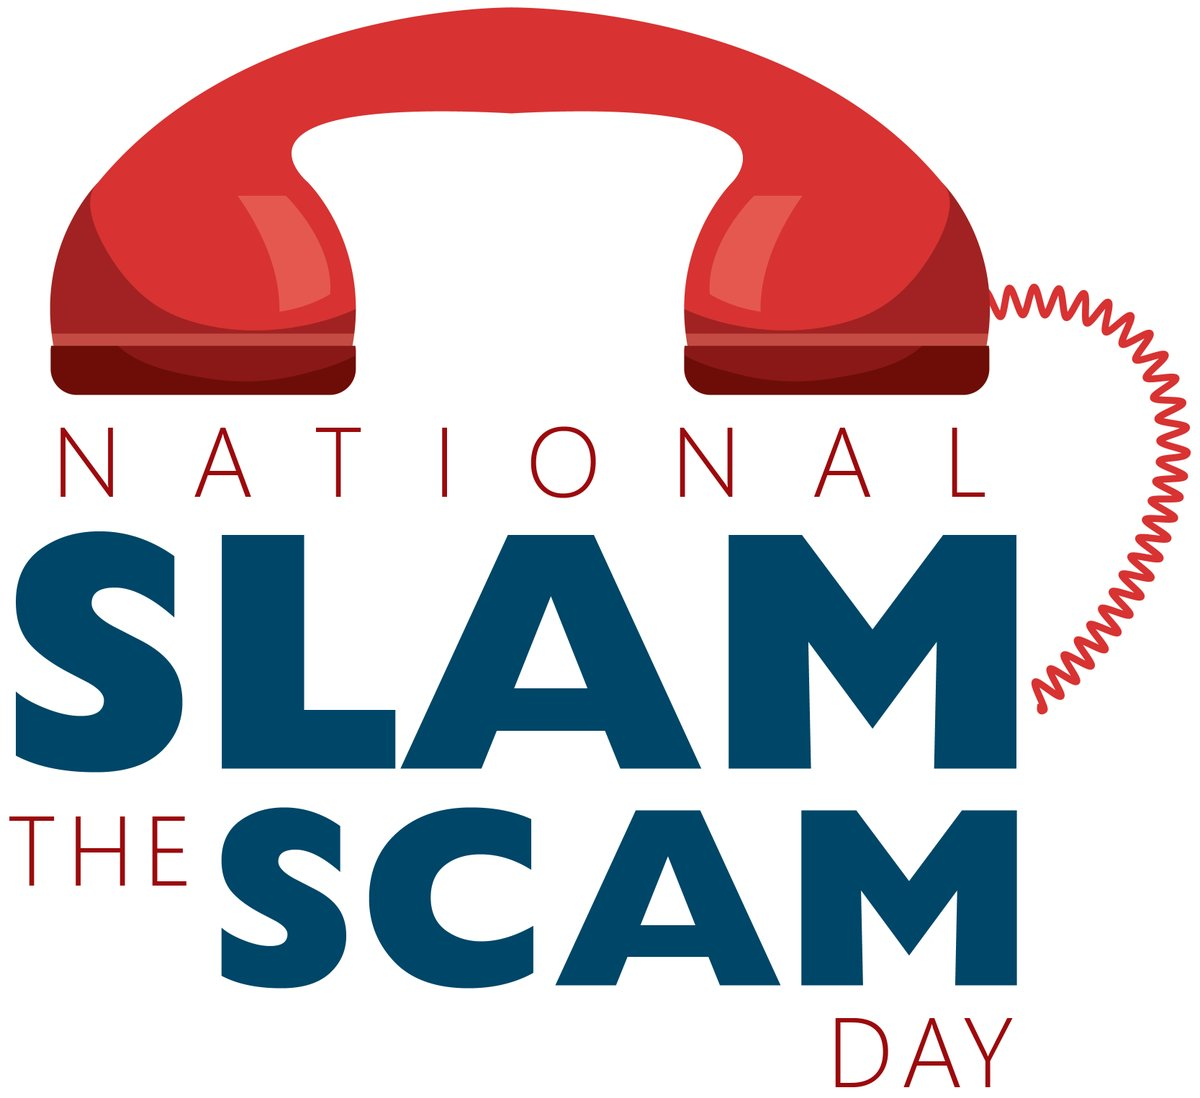 Join the #FBI and our federal partners for a Twitter chat TODAY at 2 p.m. CST to learn how to protect yourself from government imposters and phone scams. Follow @USAGov for tips from the @FTC, @SocialSecurity, and more government experts! #NCPW2021 #SlamTheScamDay